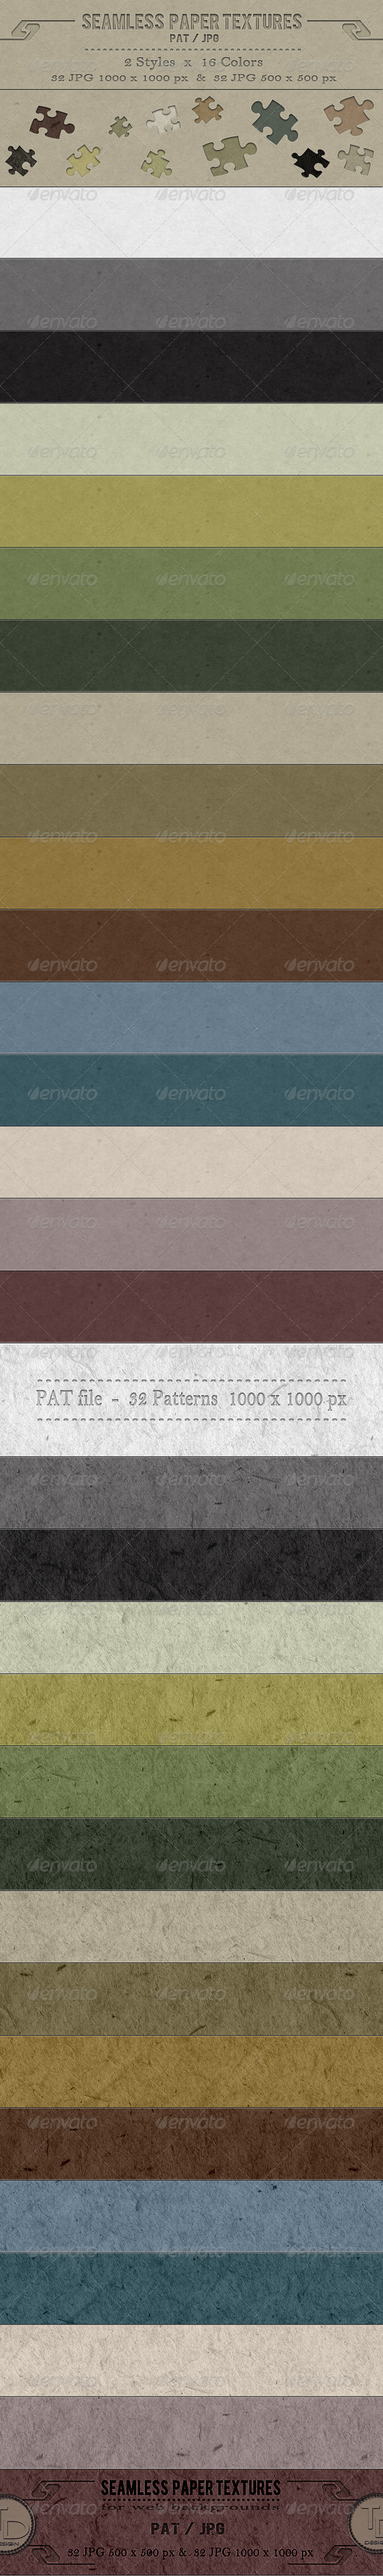 GraphicRiver Seamless Paper Textures 2531146